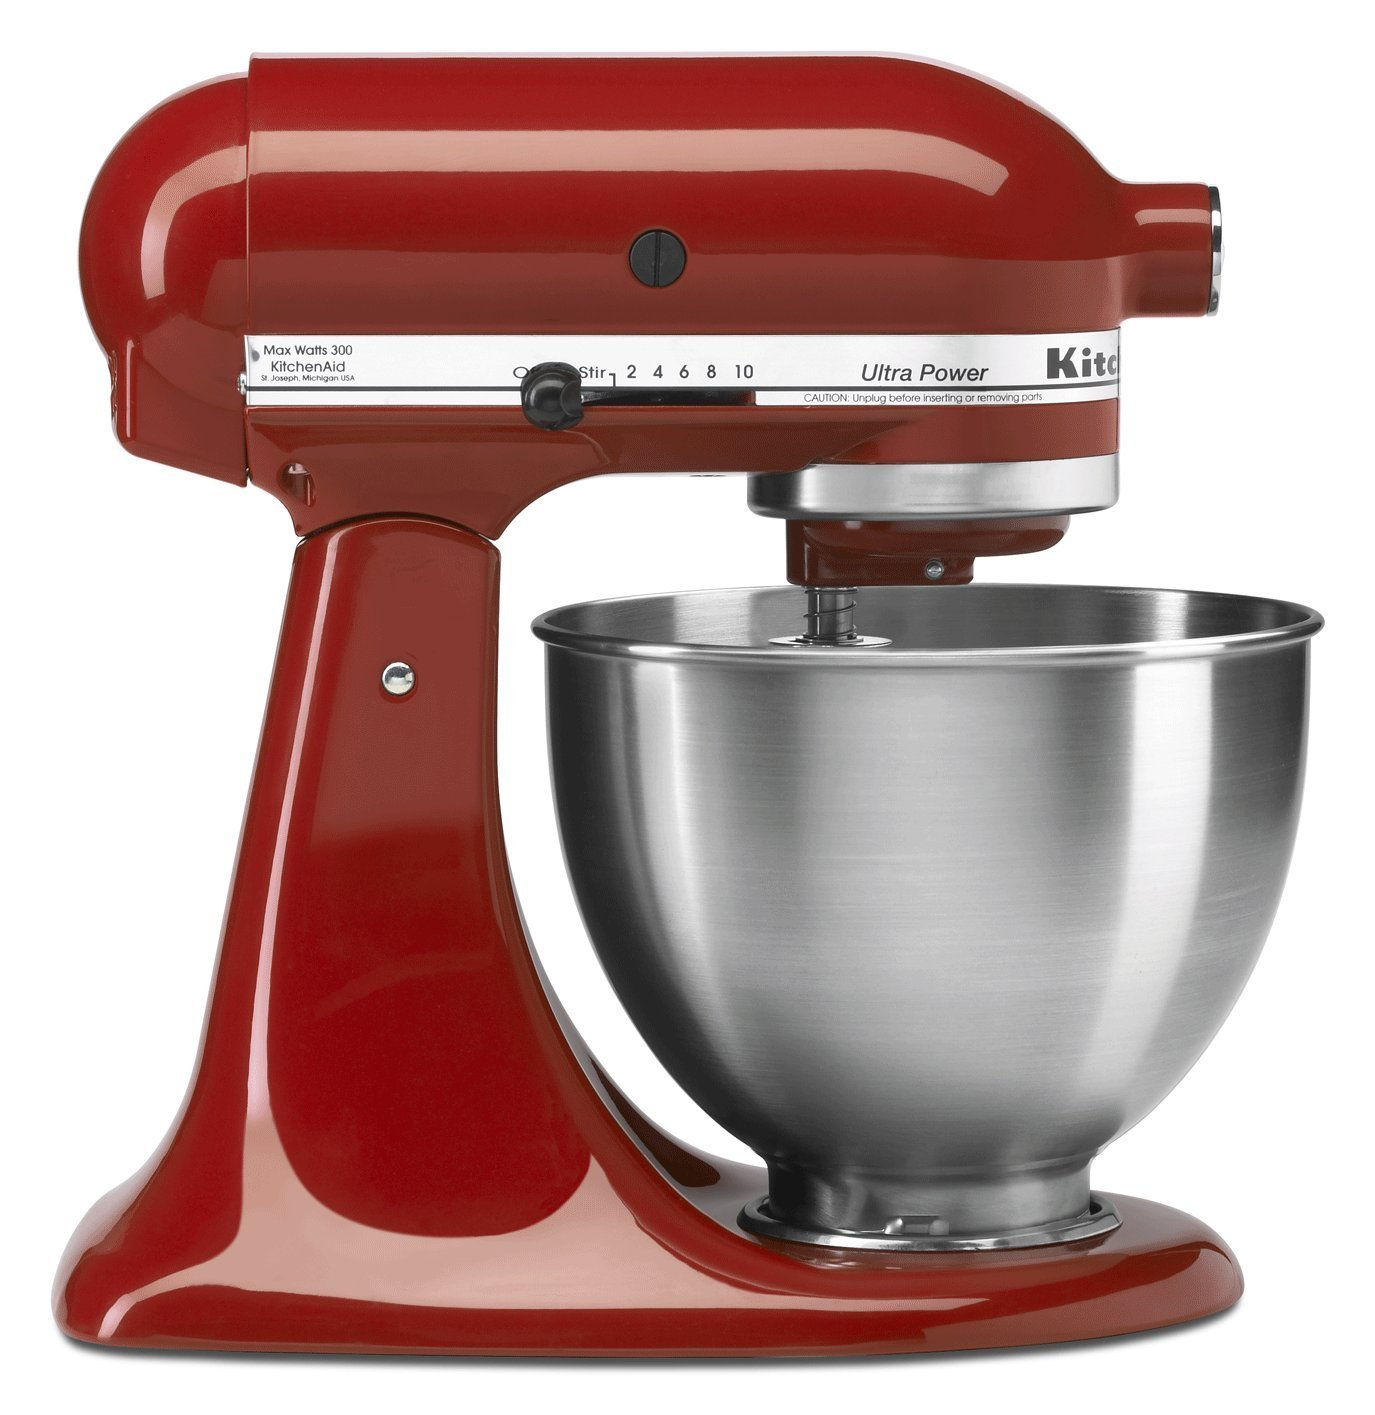 Amazon.com: KitchenAid 4.